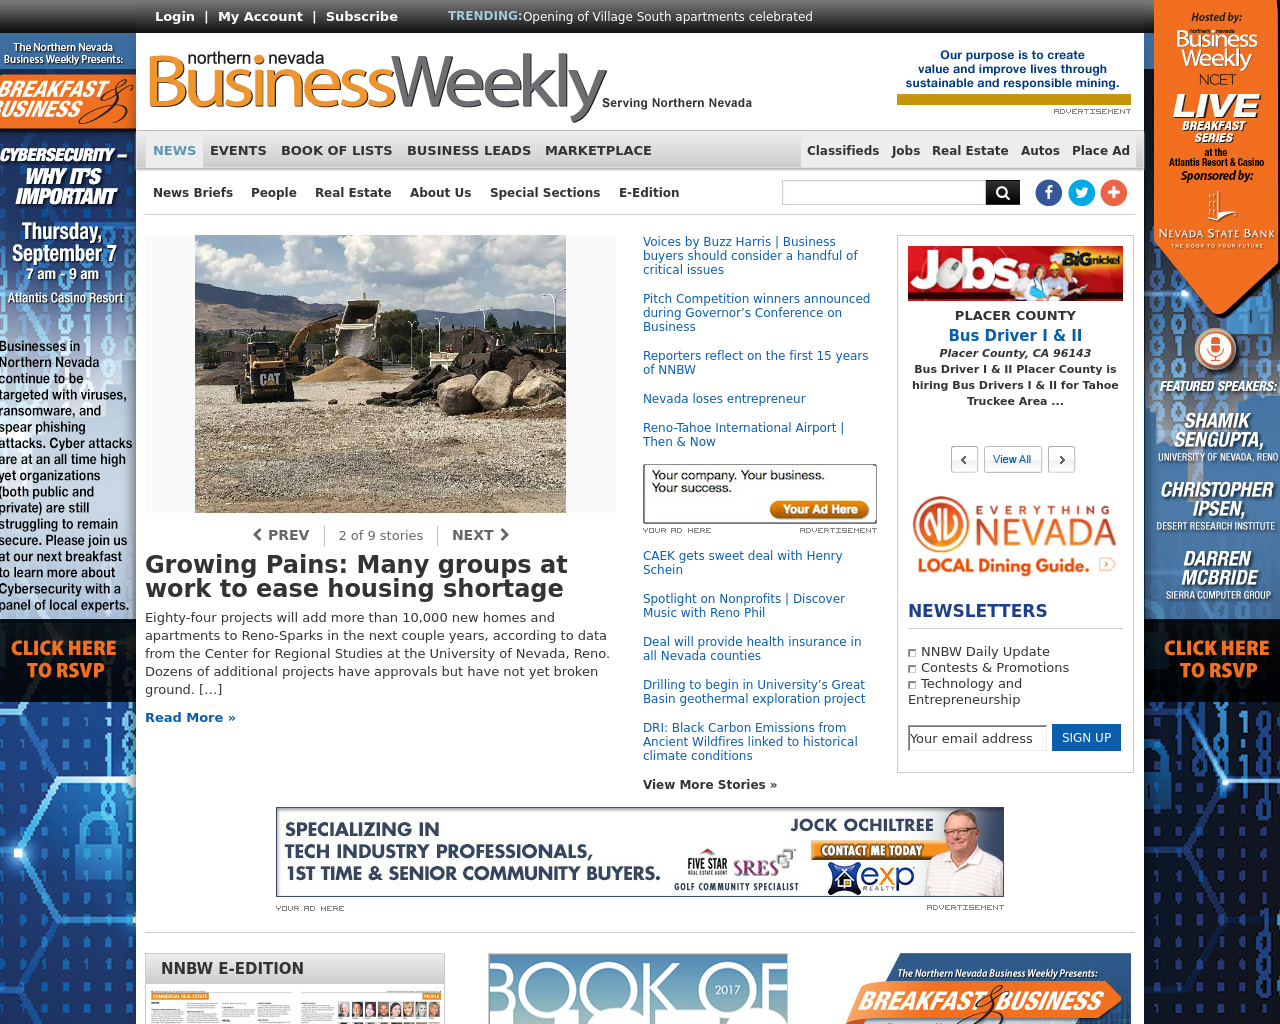 Northern-Nevada-Business-Weekly-Advertising-Reviews-Pricing